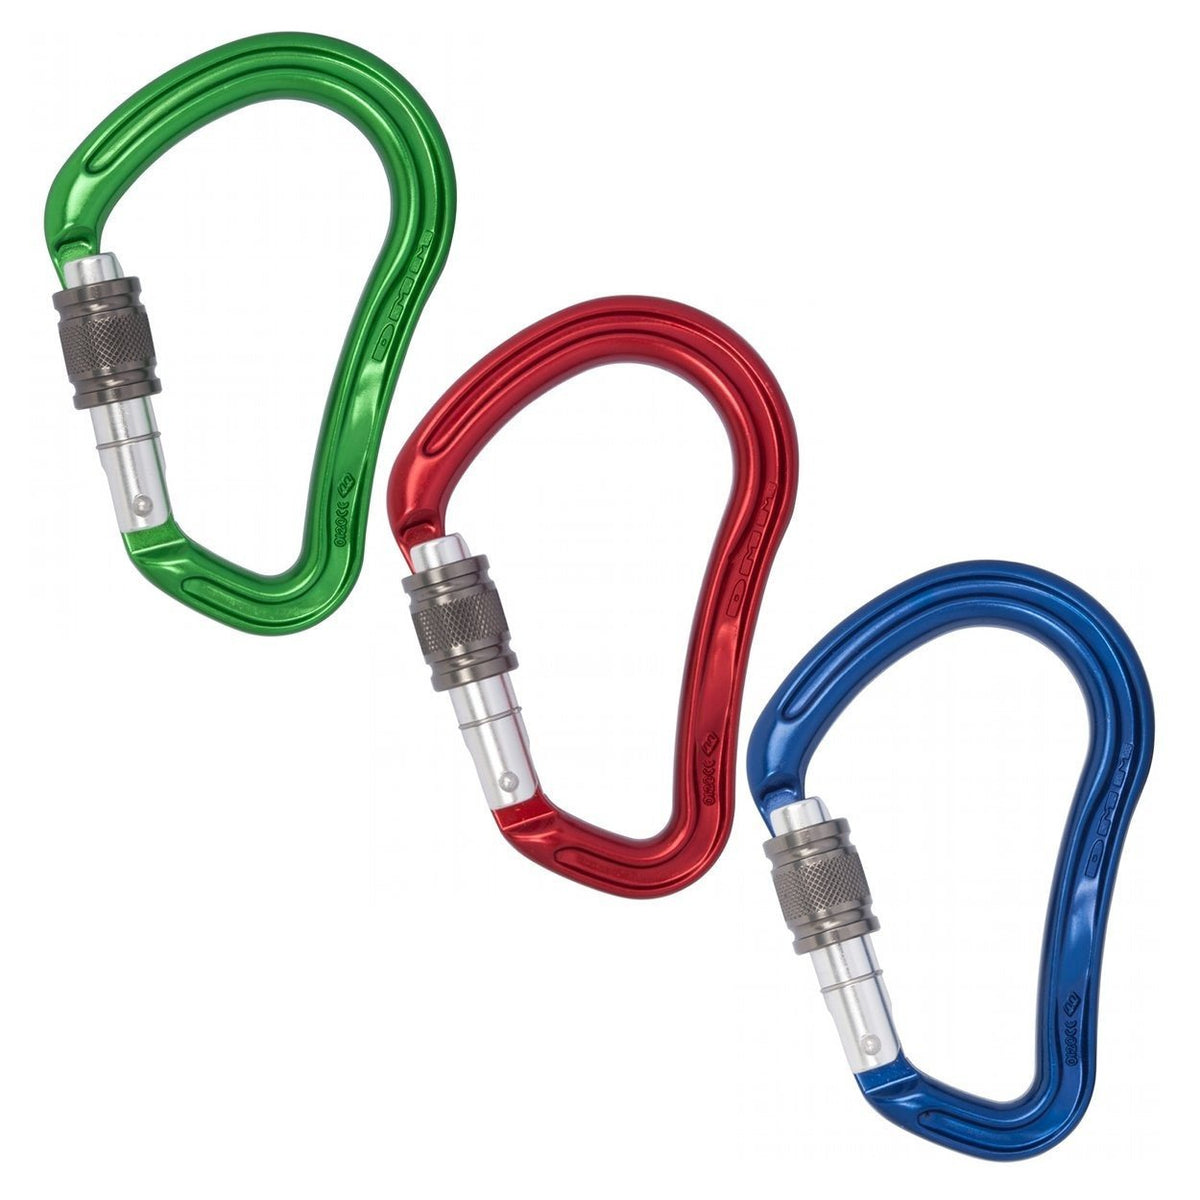 DMM Boa HMS Carabiner Coloured 3-Pack of green, red and blue